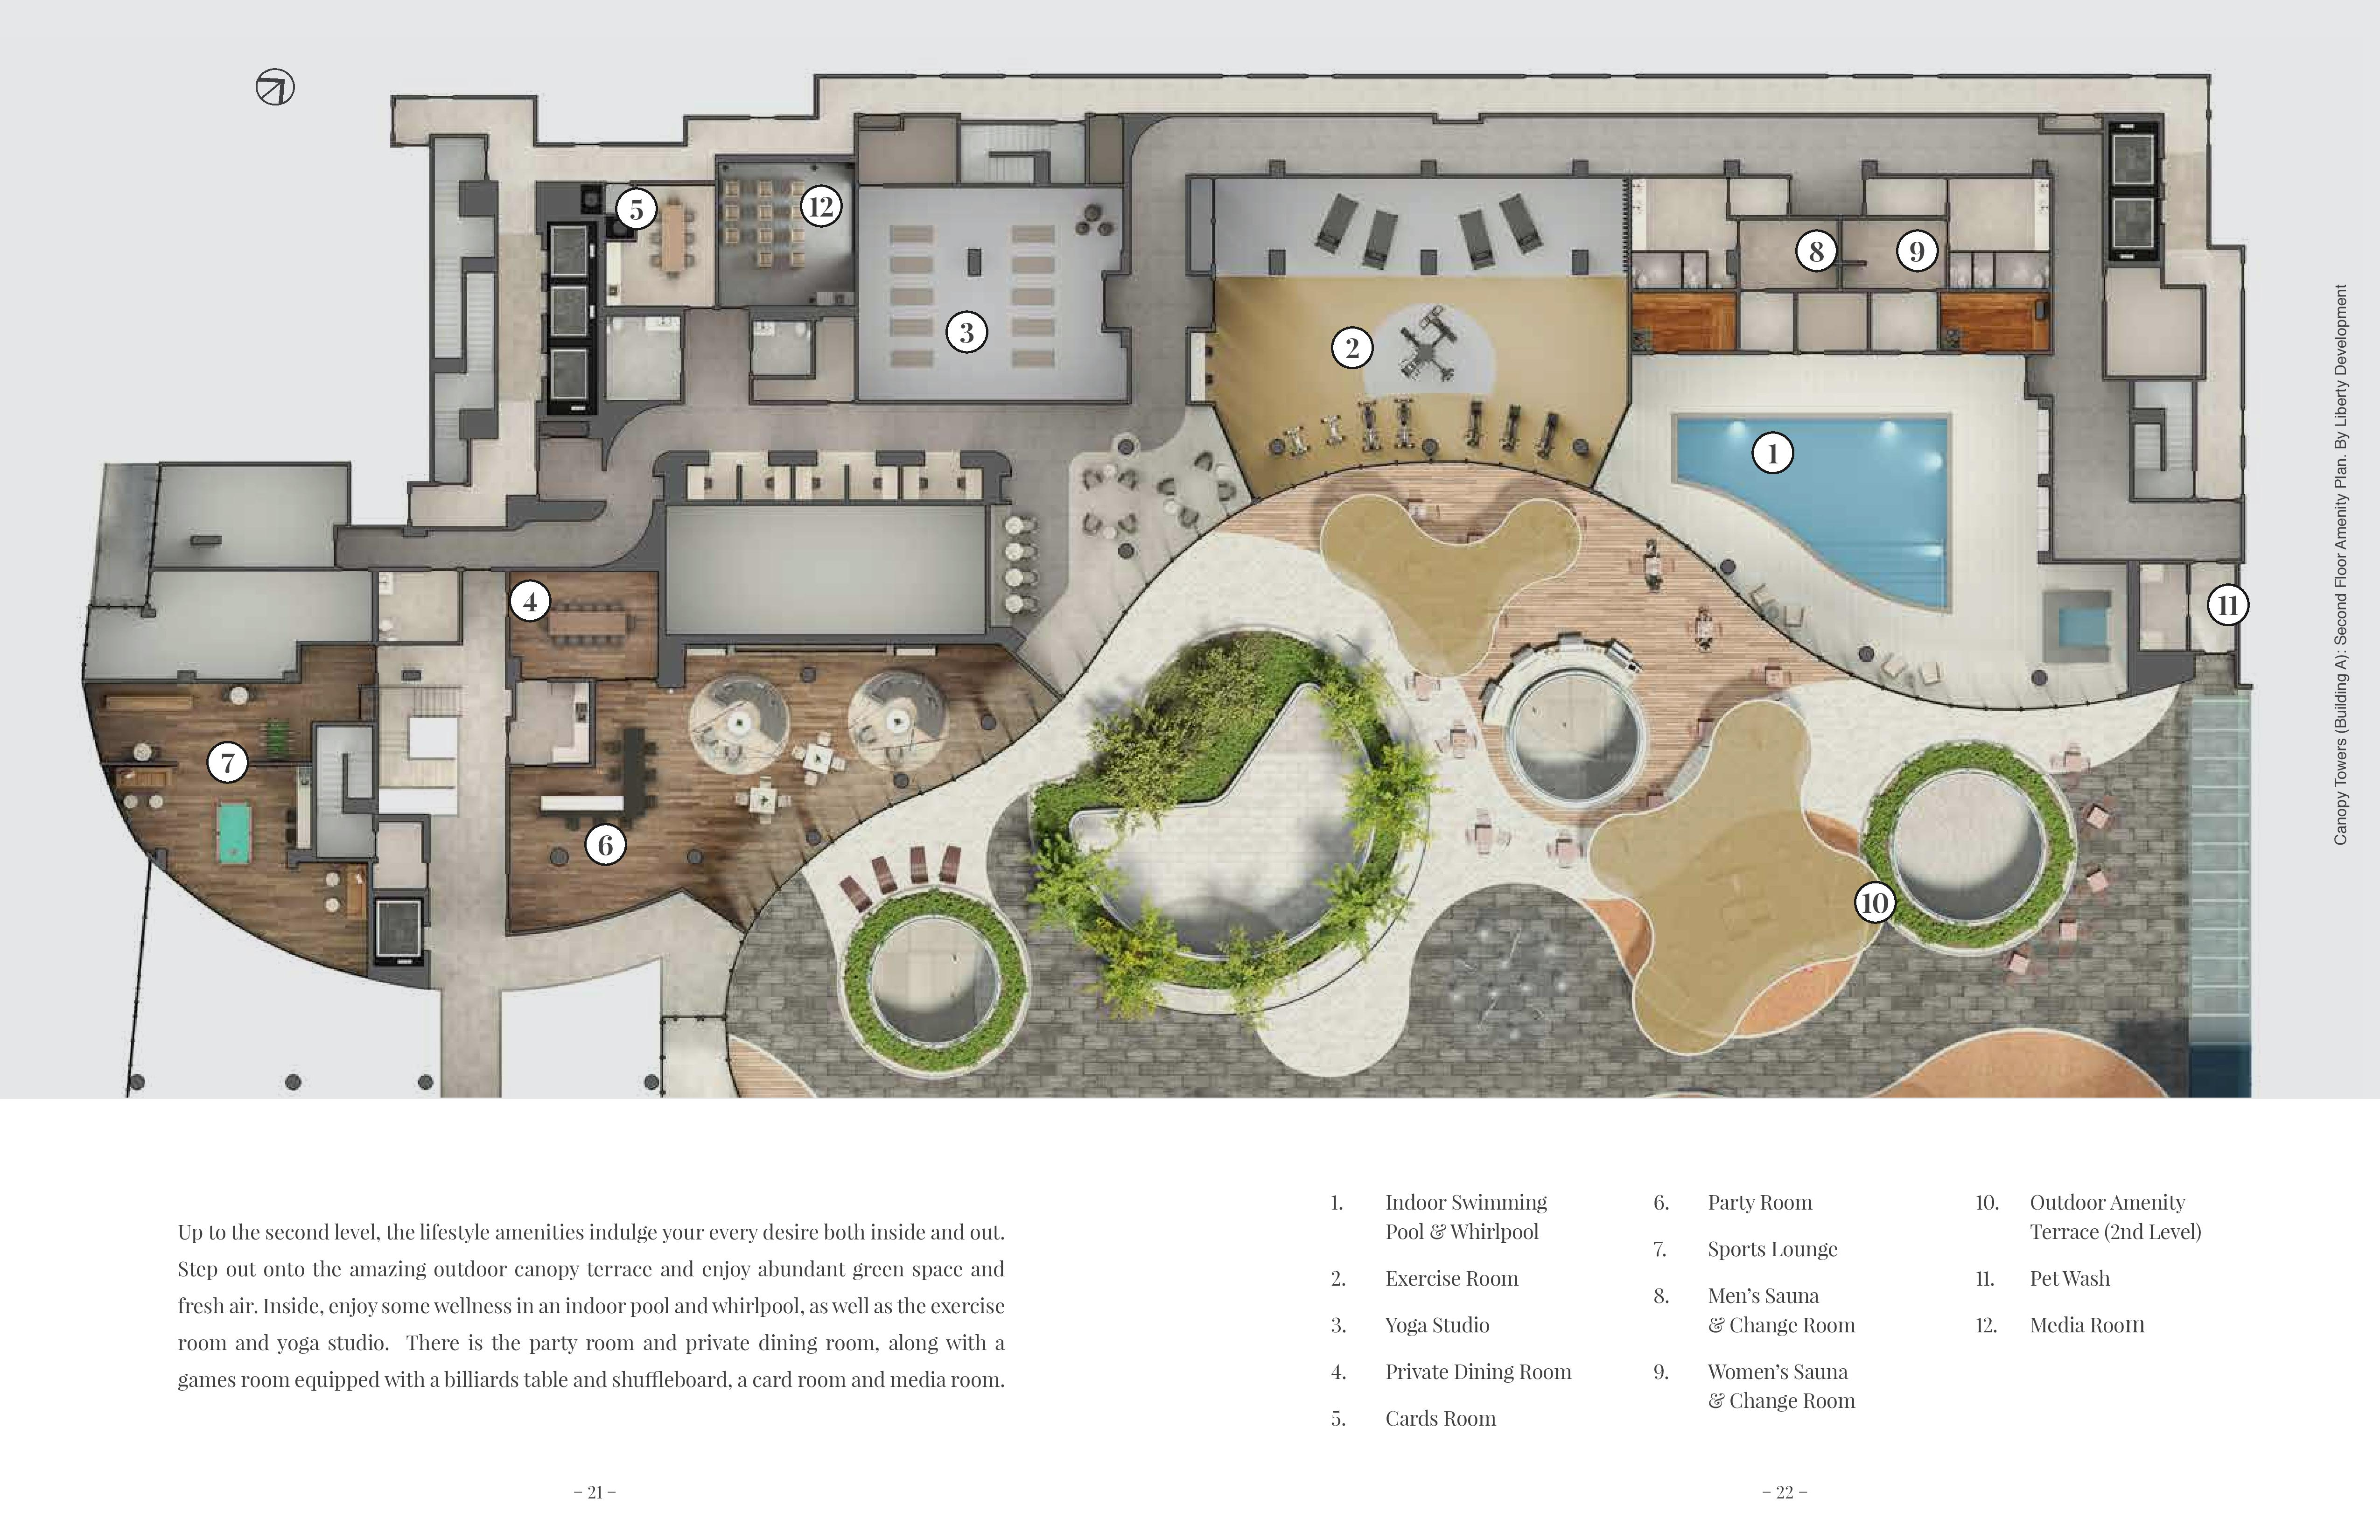 Canopy Towers Amenities